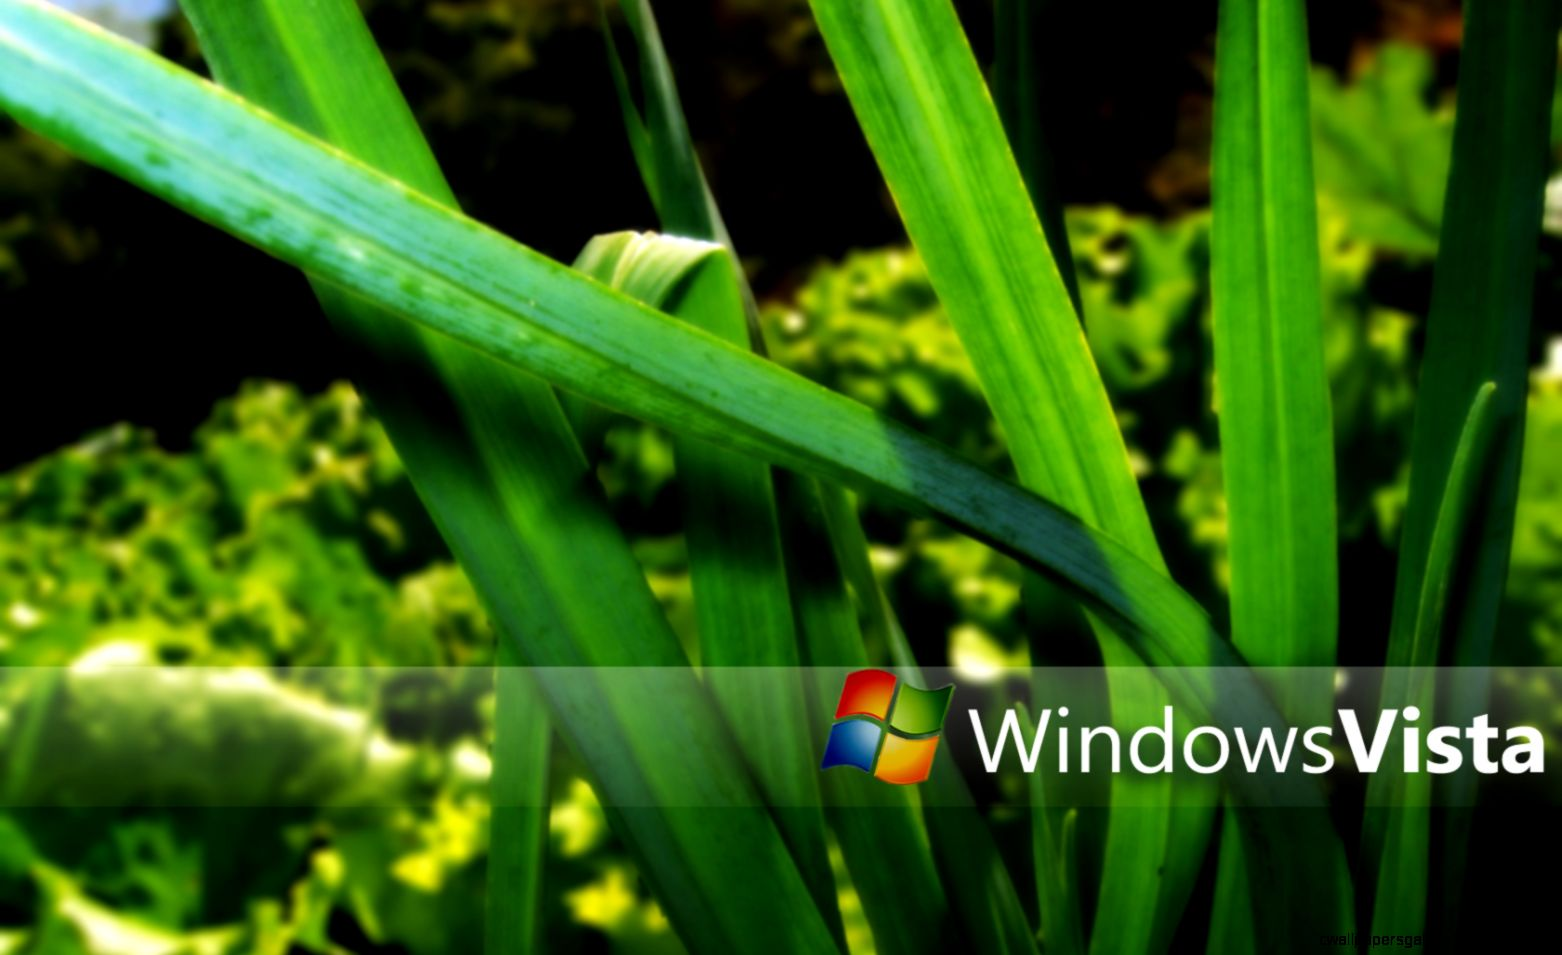 Windows Vista Nature Wallpaper By Valorieketlyn 1680x1050 pixel